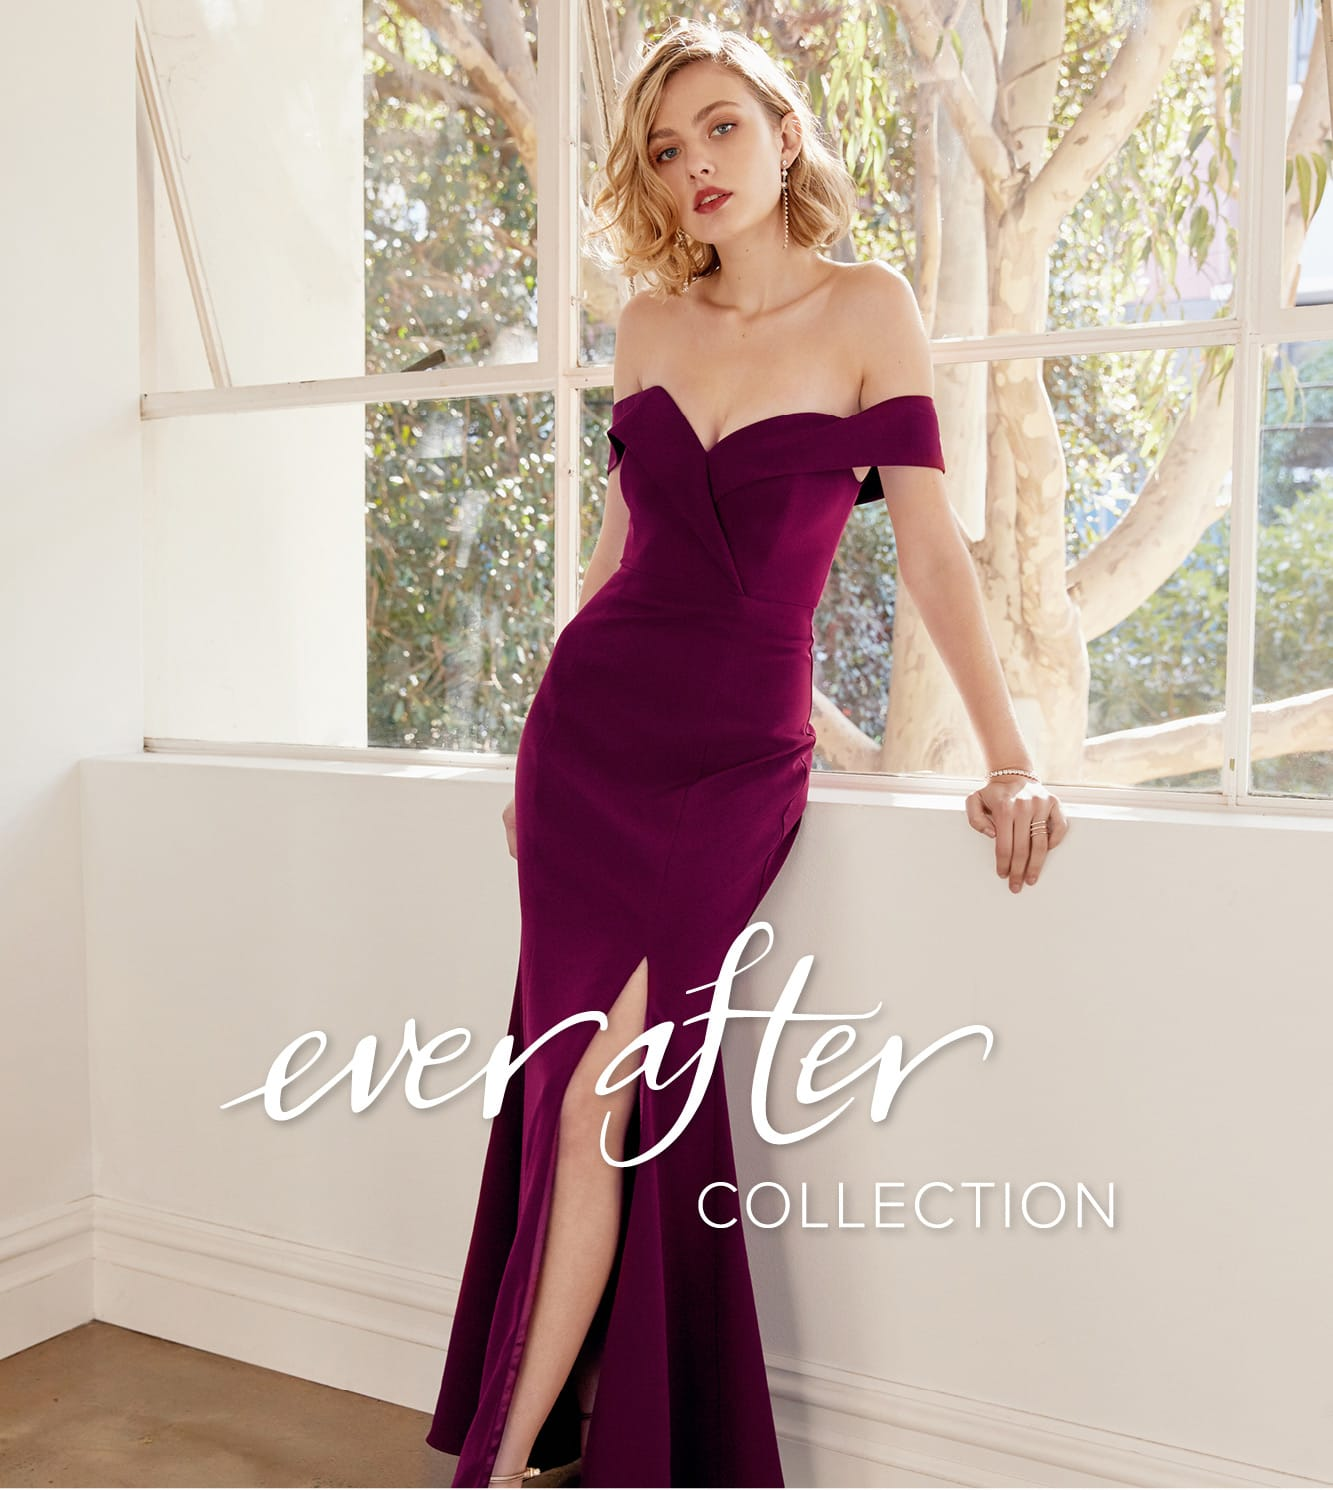 Everafter Collection